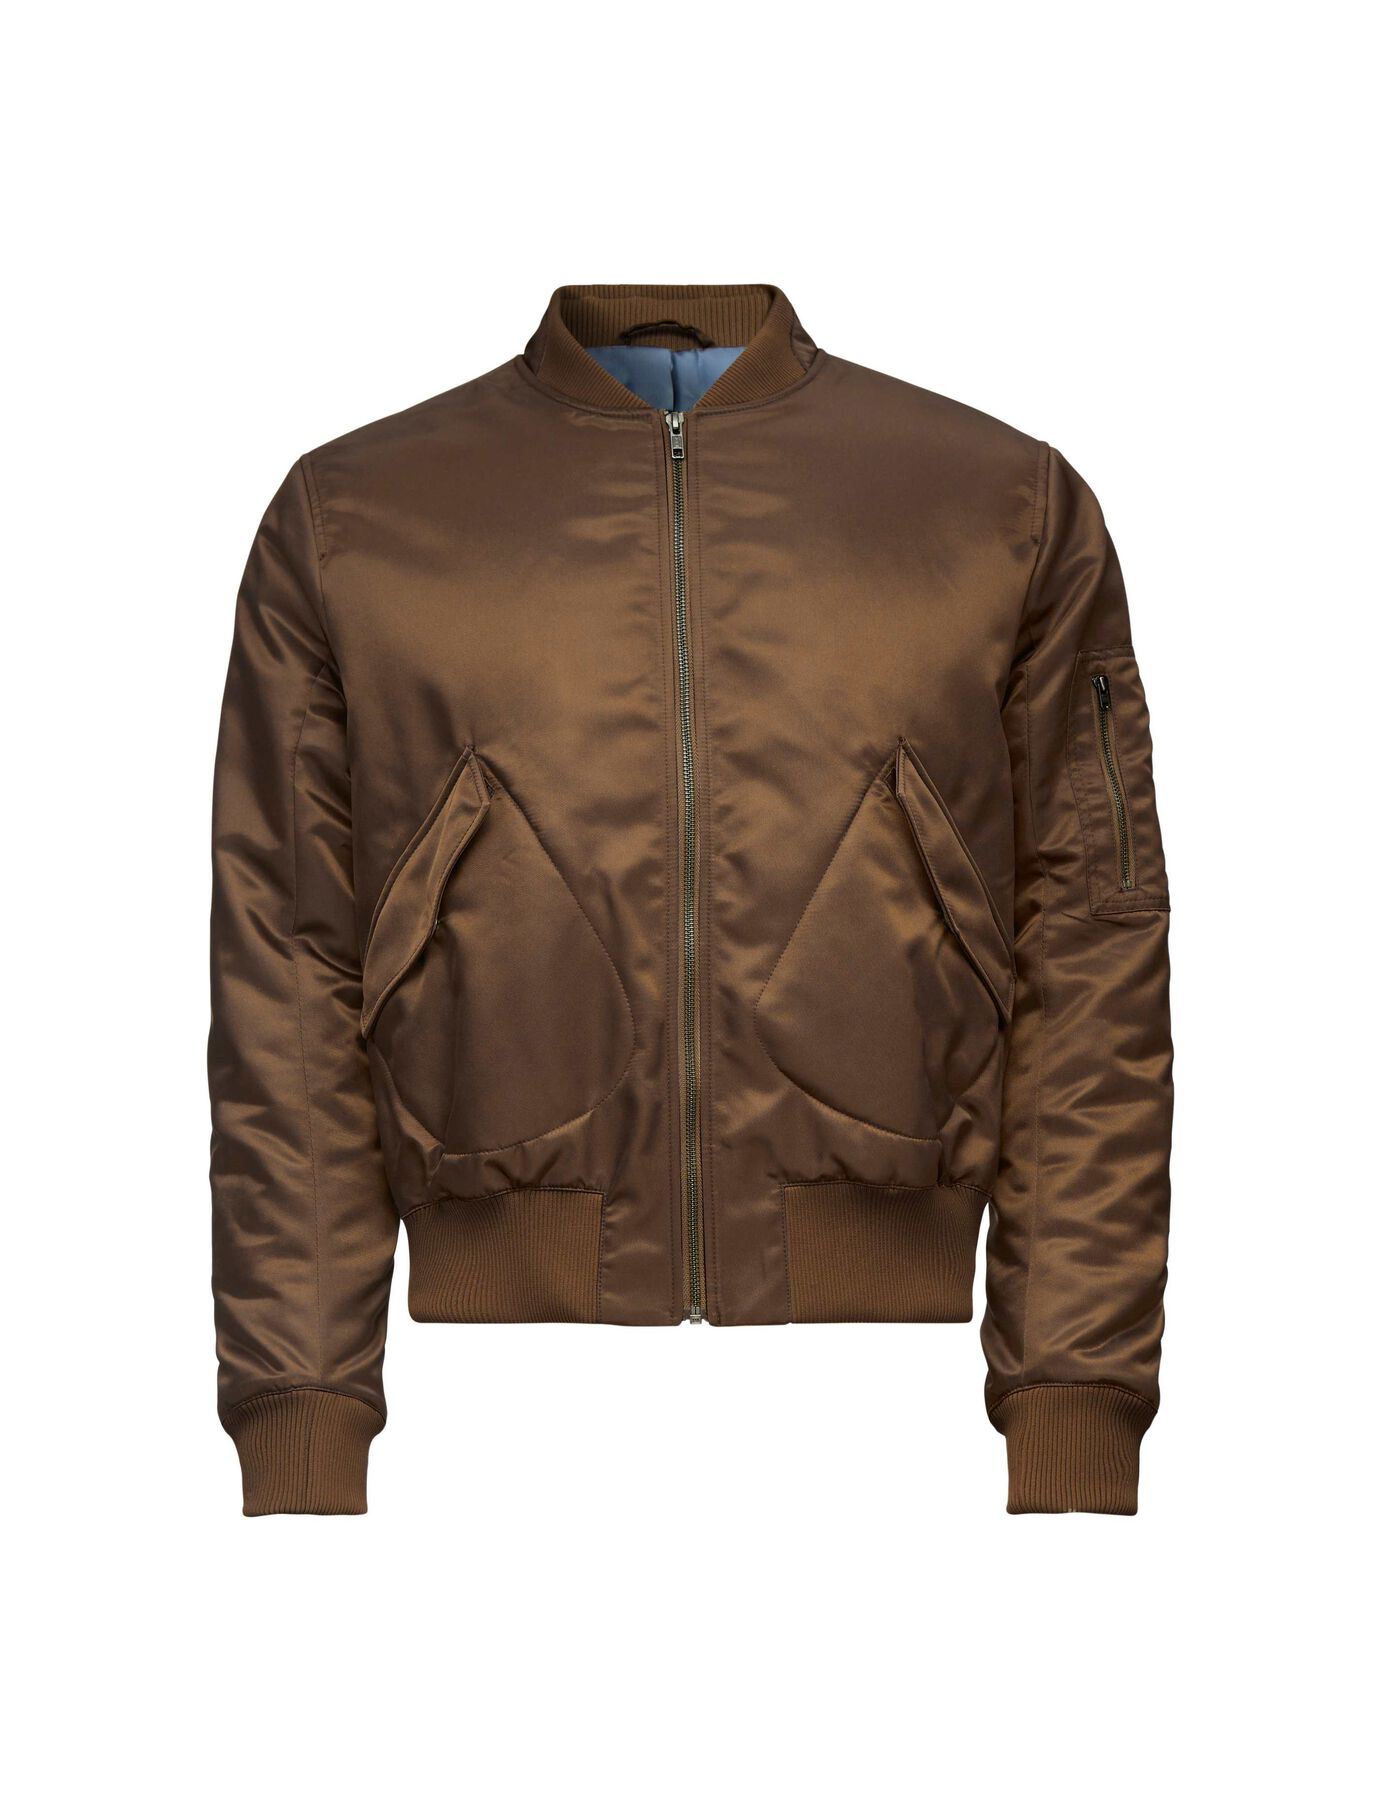 LUNDIN JACKET in Brown from Tiger of Sweden